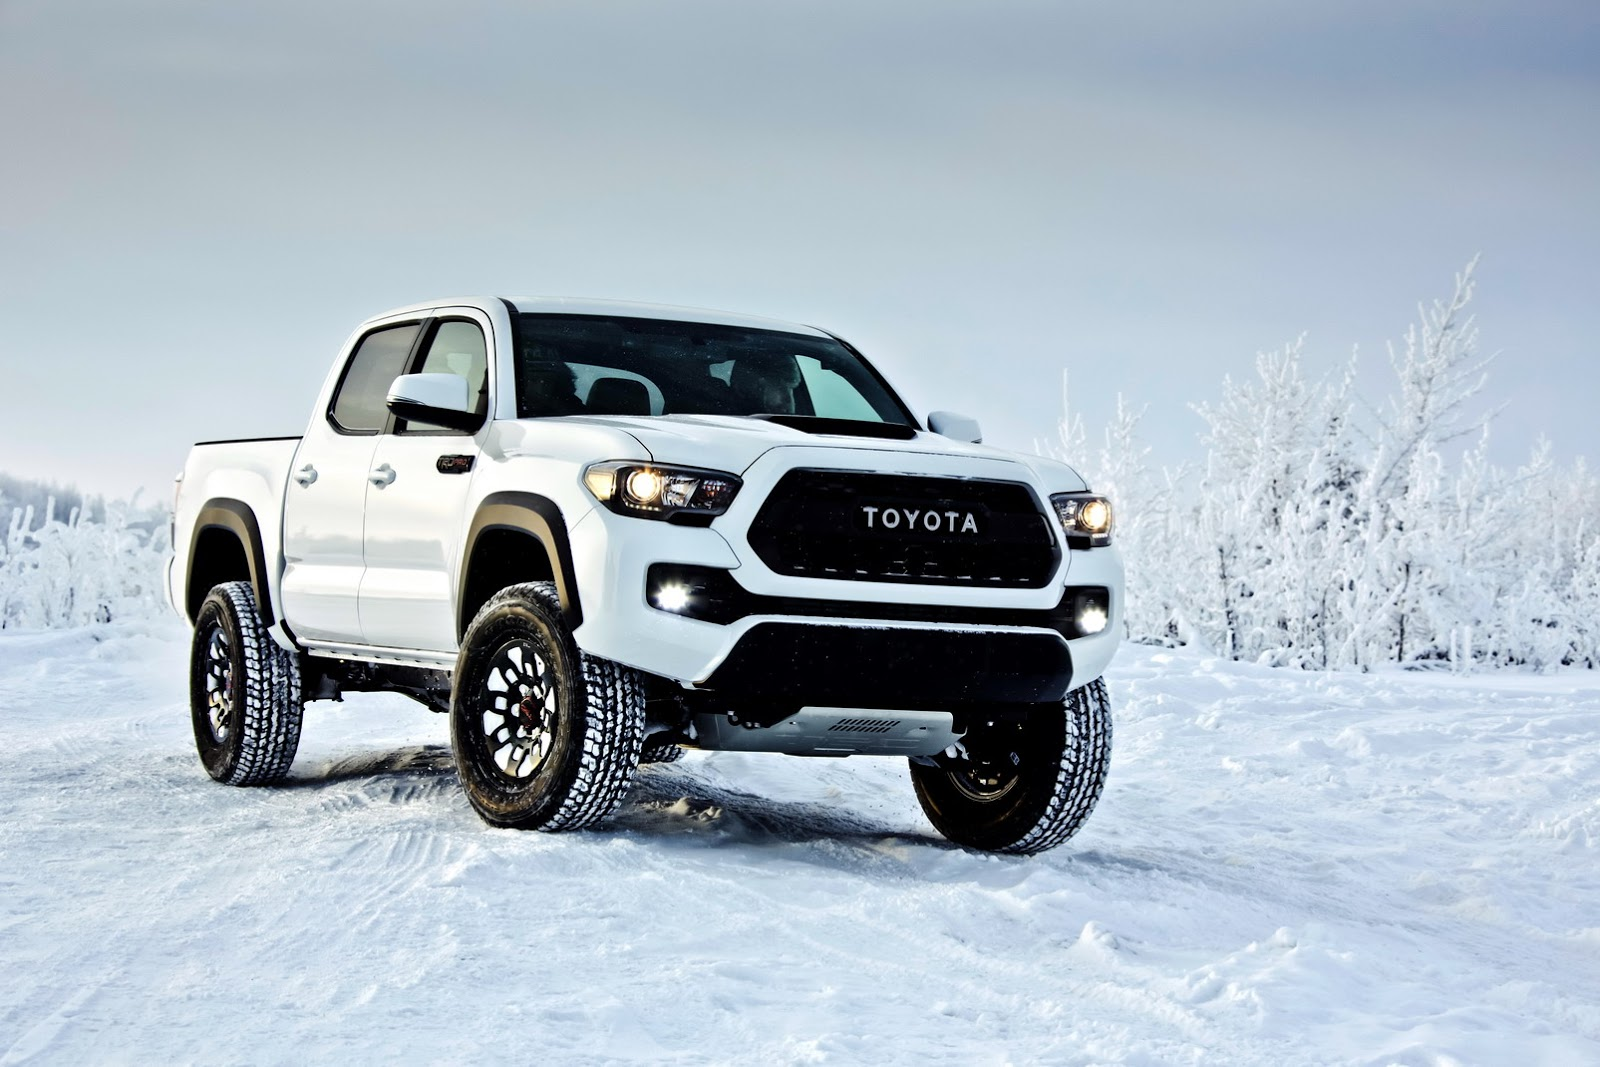 Double Cab Pickup Trucks >> 2017 Toyota Tacoma TRD Pro Is Like A Japanese Raptor Without The Power | carscoops.com